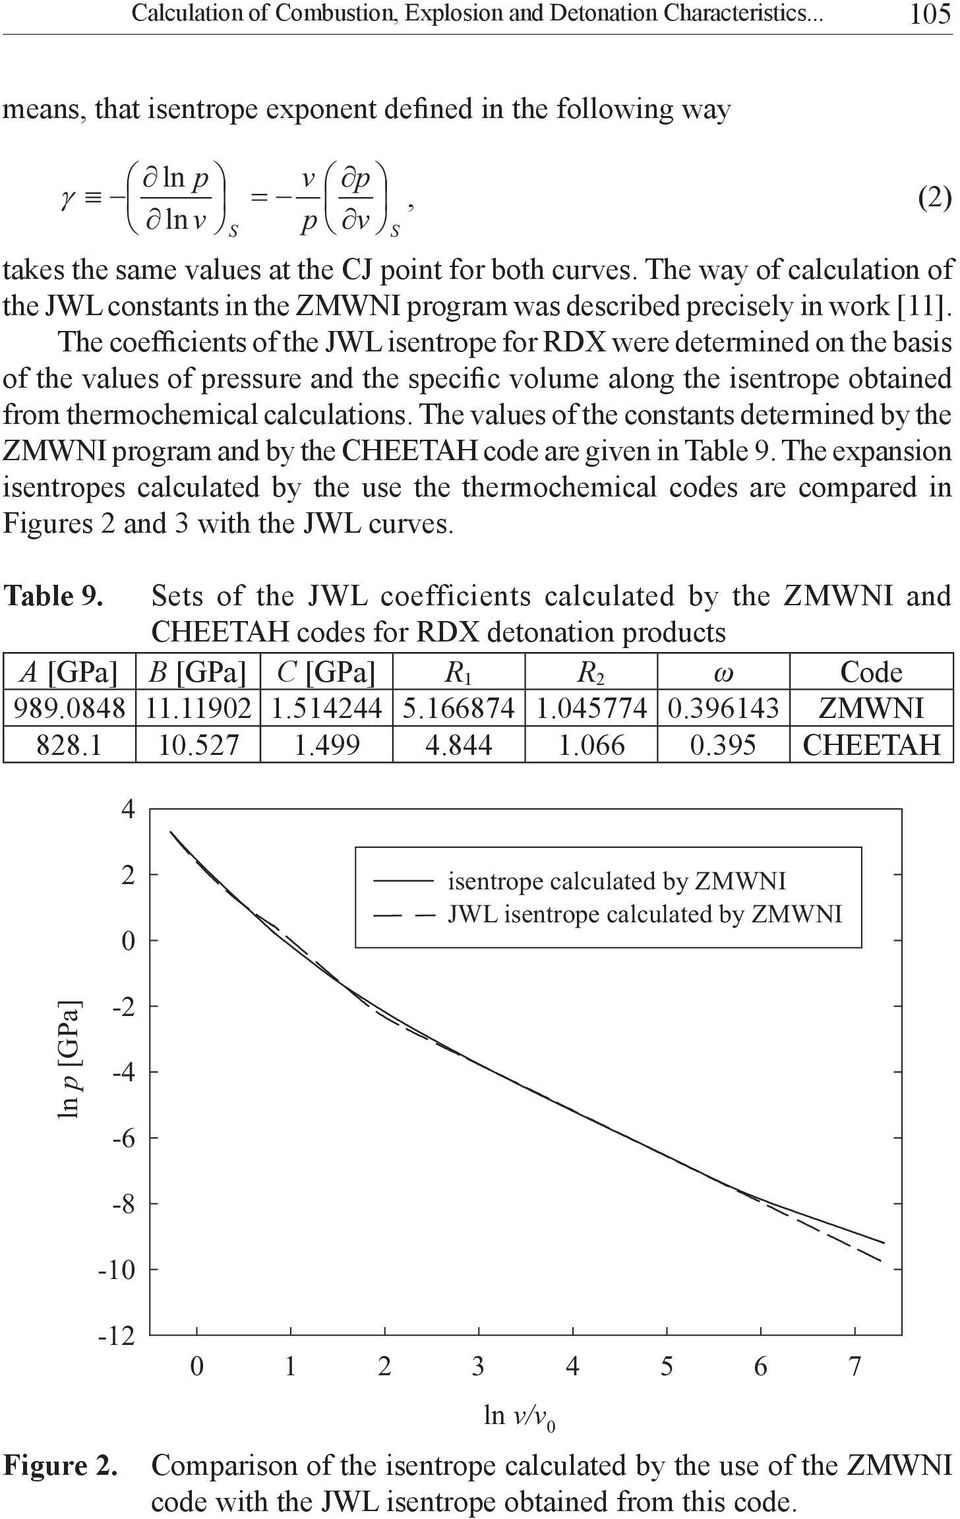 The way of calculation of the JWL constants in the ZMWNI program was described precisely in work [11].